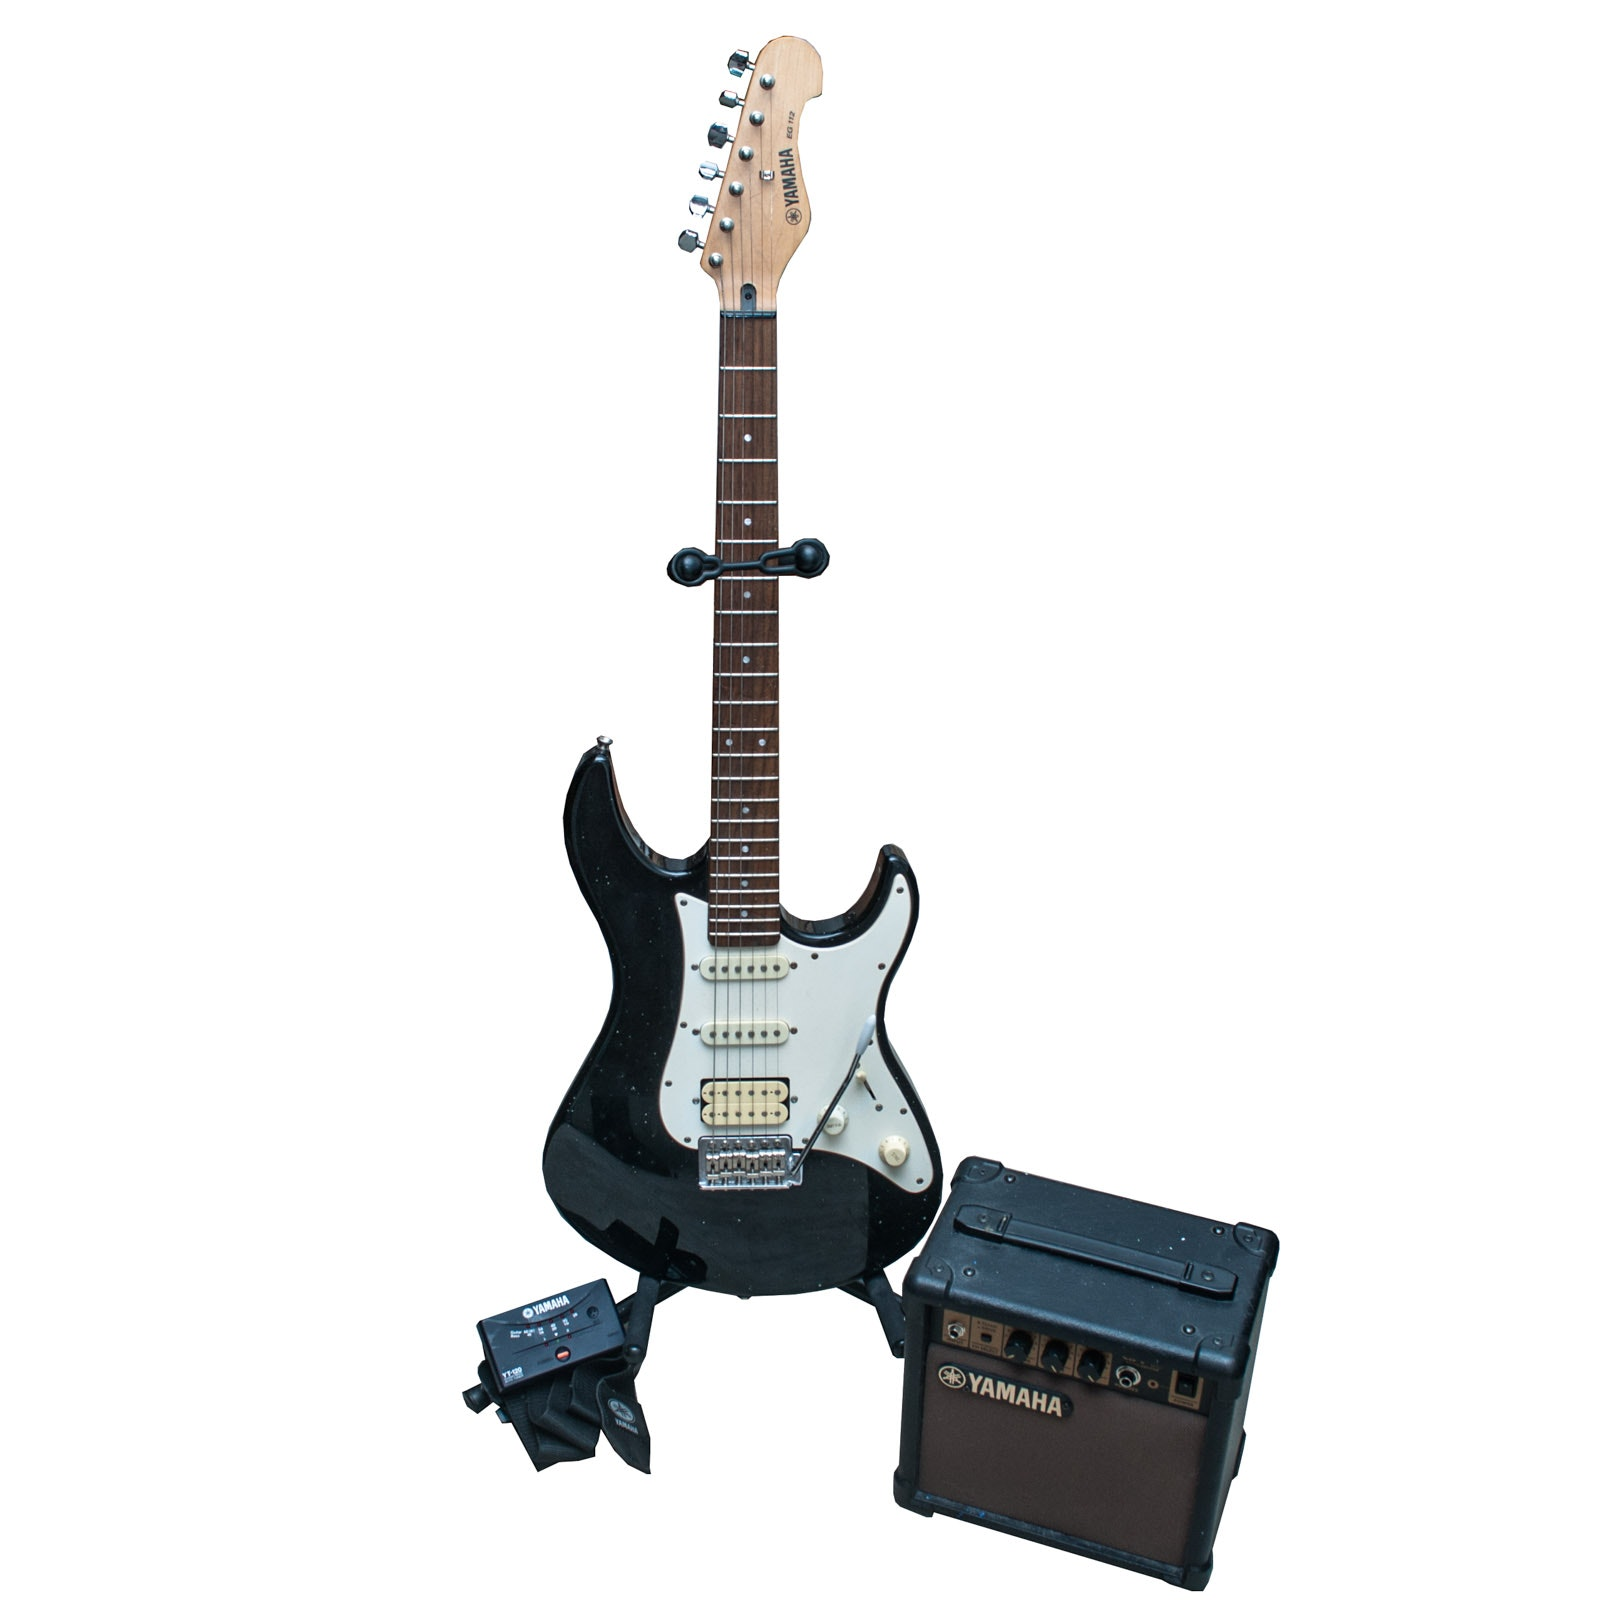 Yamaha EG 112 Electric Guitar with Amp and Stand